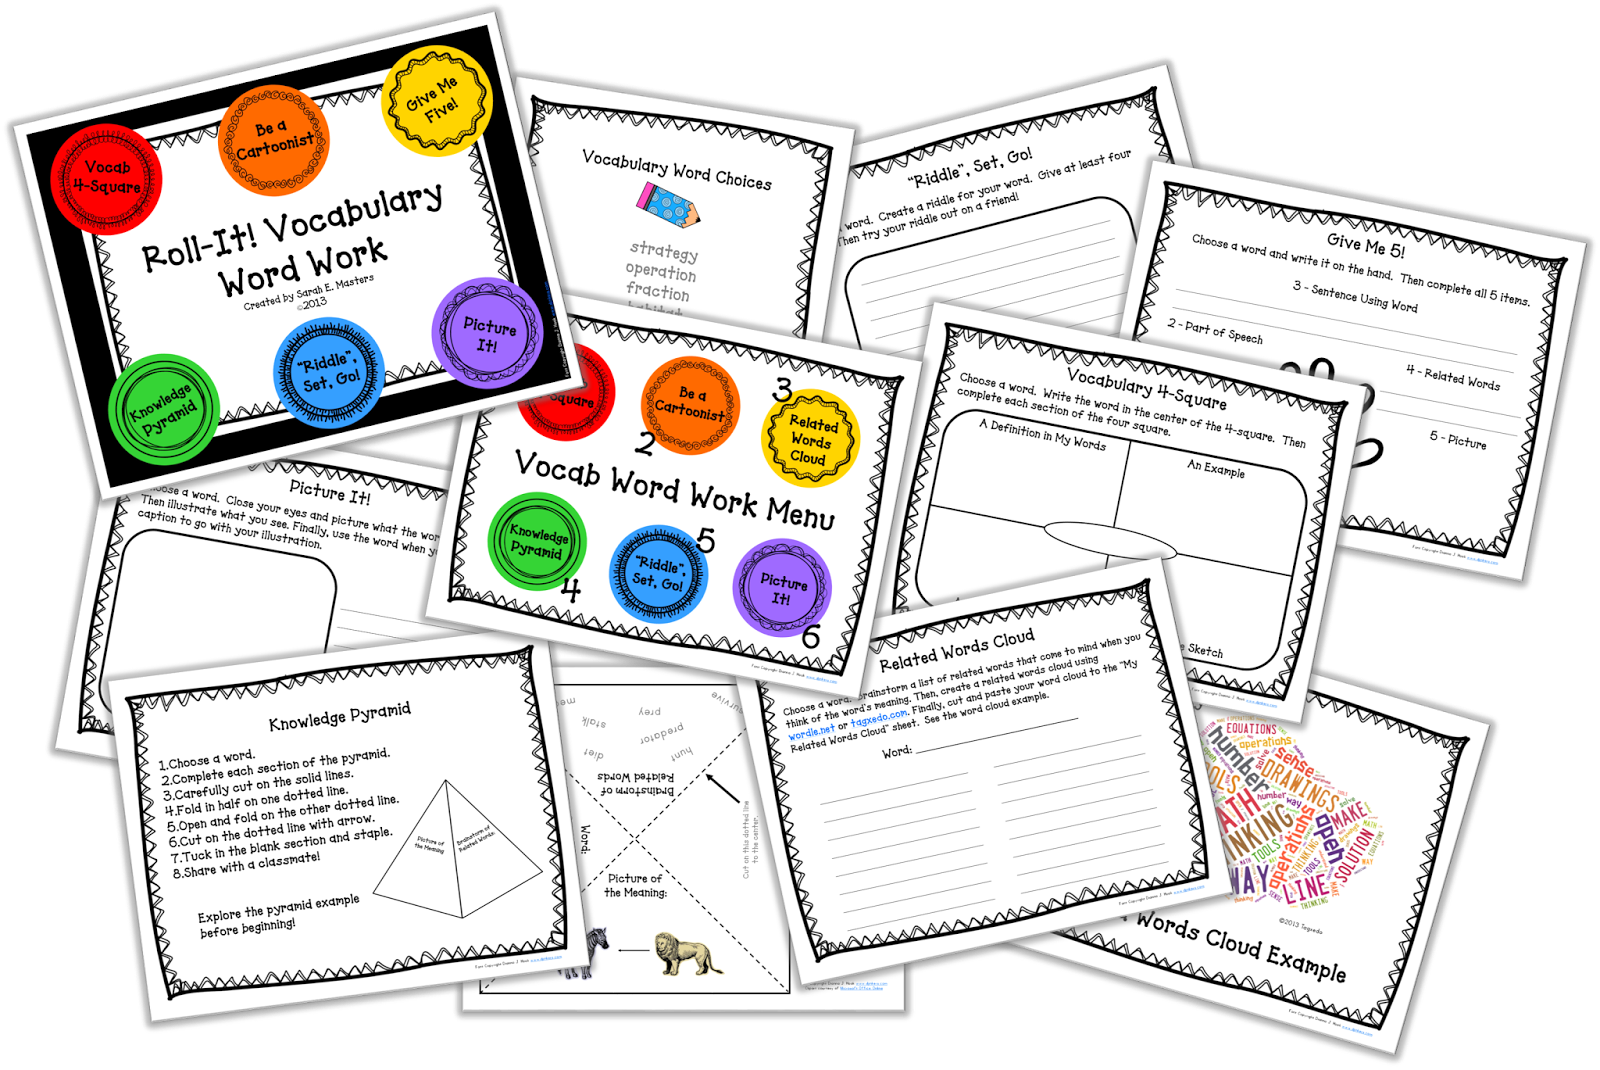 http://www.teacherspayteachers.com/Product/Roll-It-Vocabulary-Word-Work-Center-or-Workstation-639971